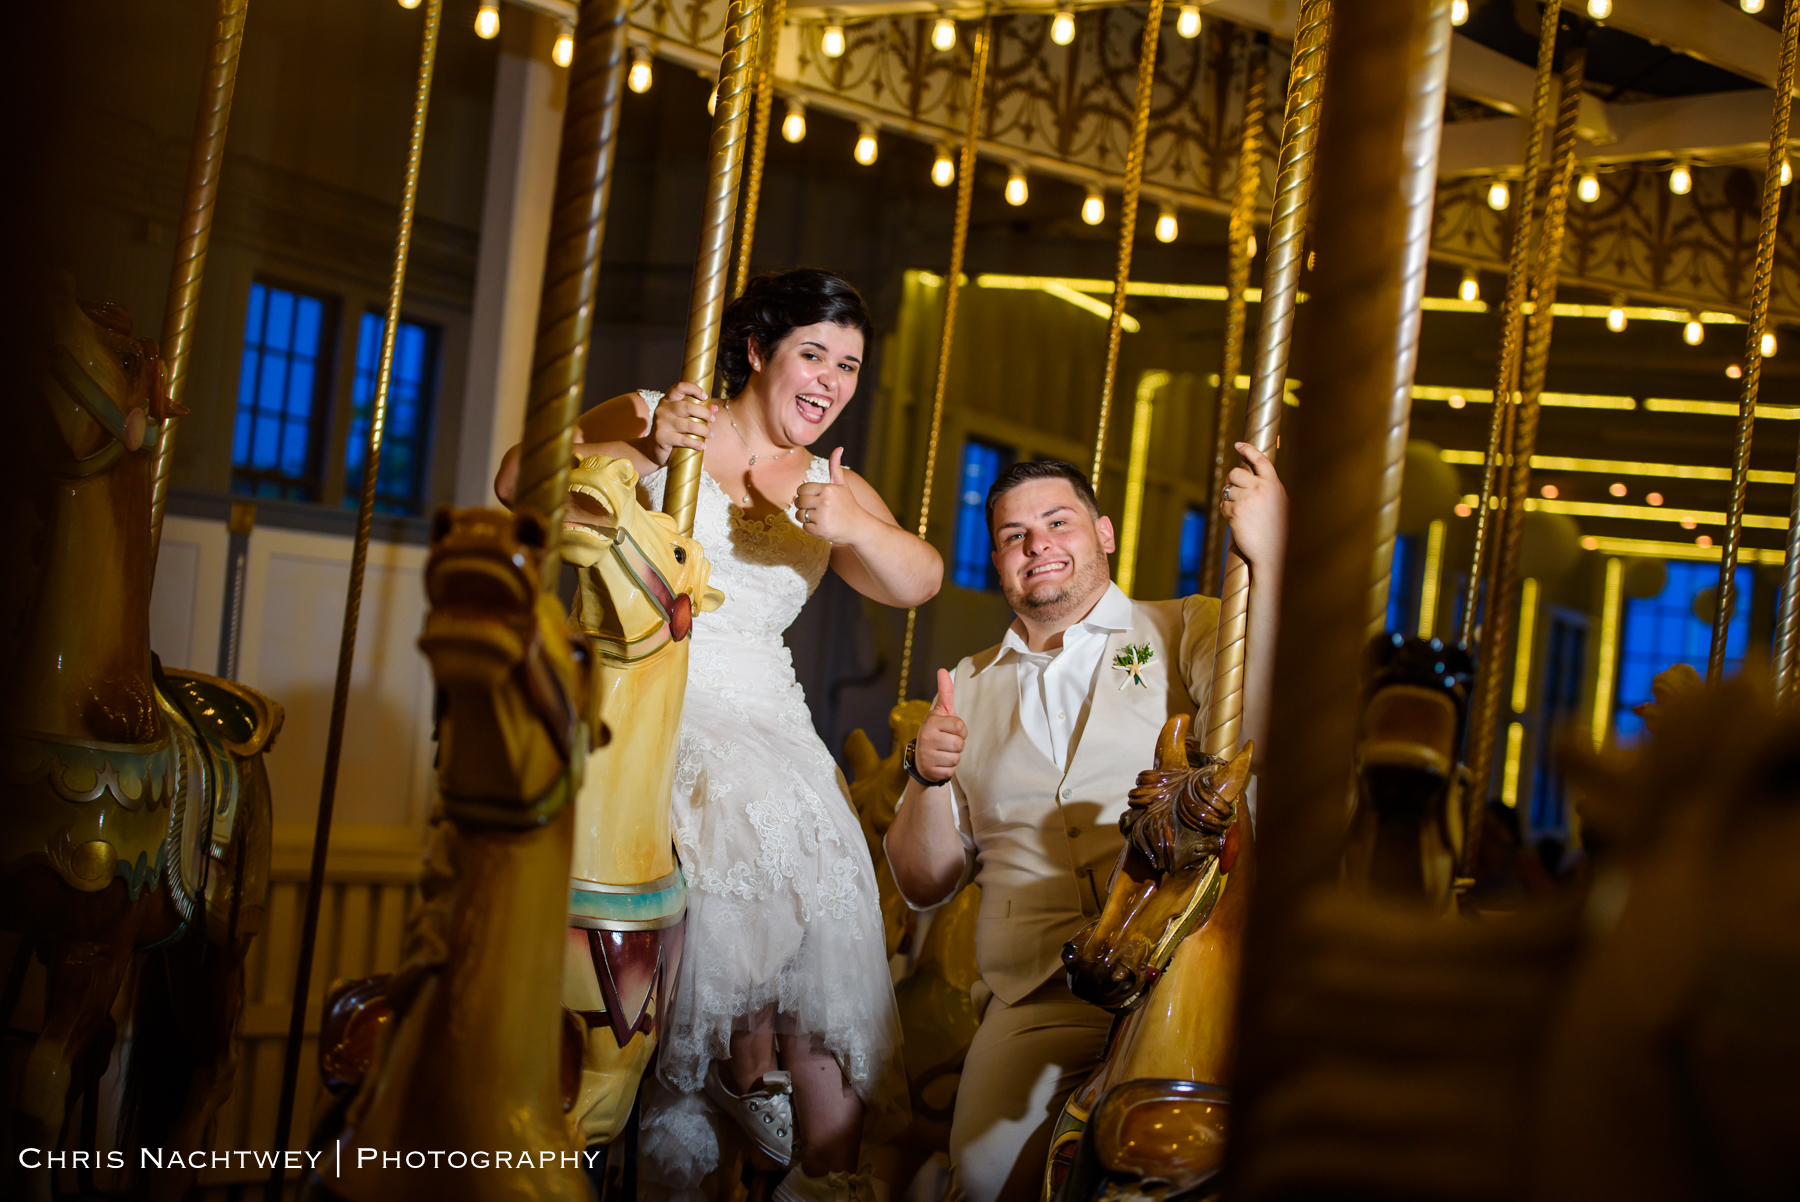 photos-wedding-lighthouse-point-park-carousel-new-haven-chris-nachtwey-photography-2019-57.jpg